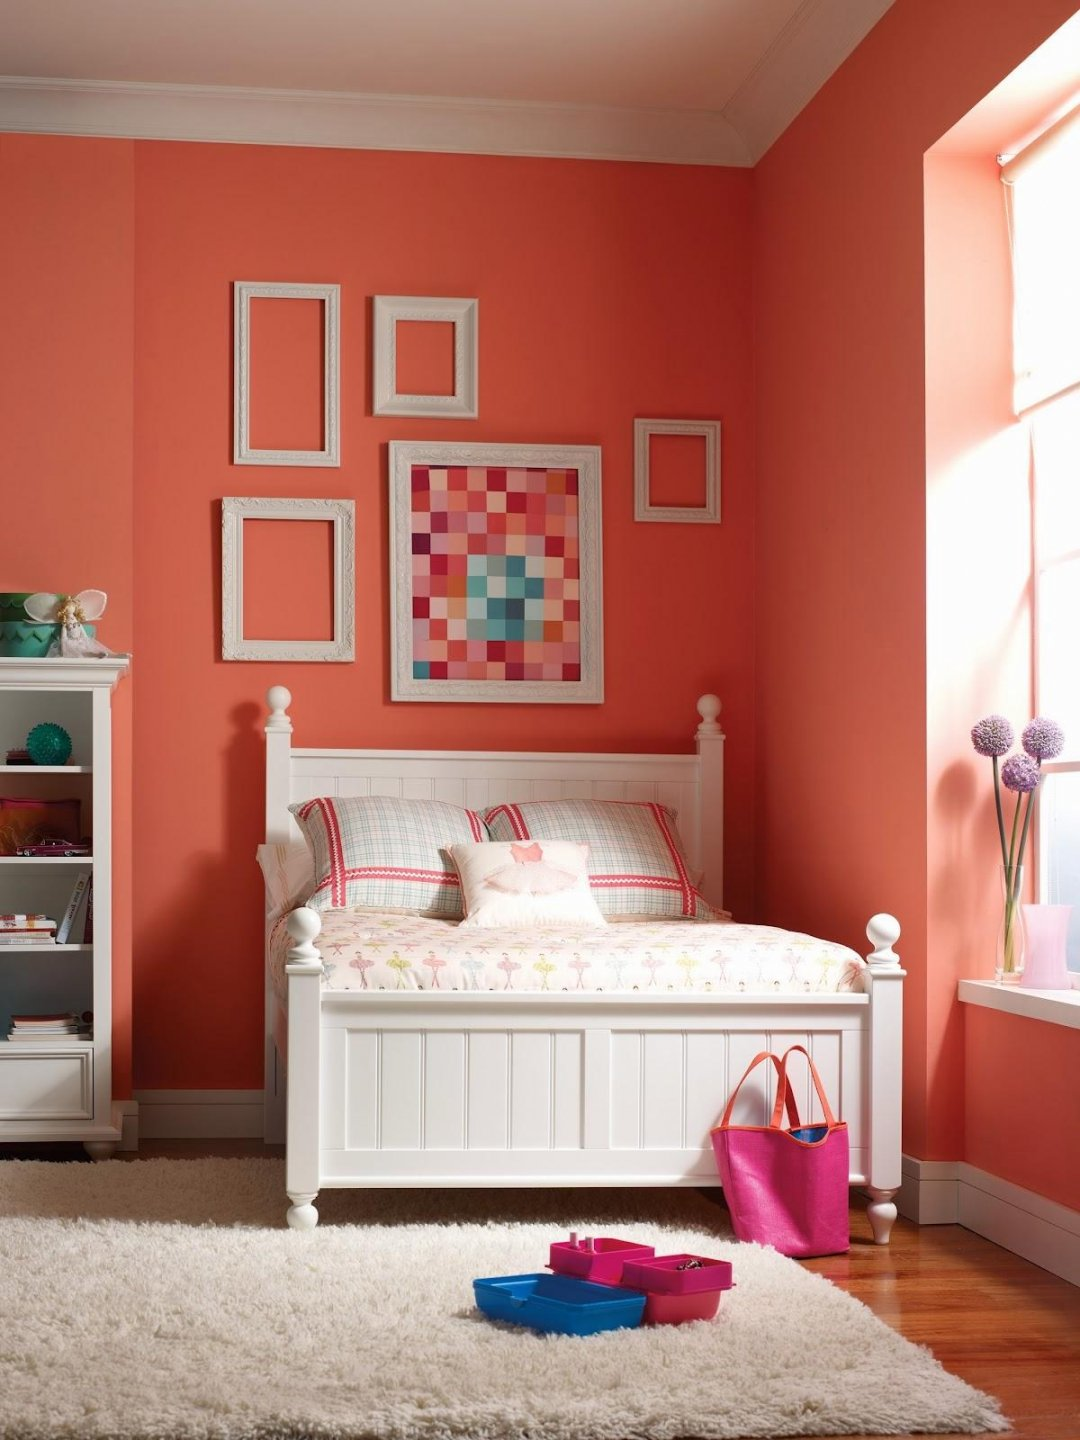 Color Schemes For Rooms Wall Colour Combination For Small Bedroom Ideas Bright Paint